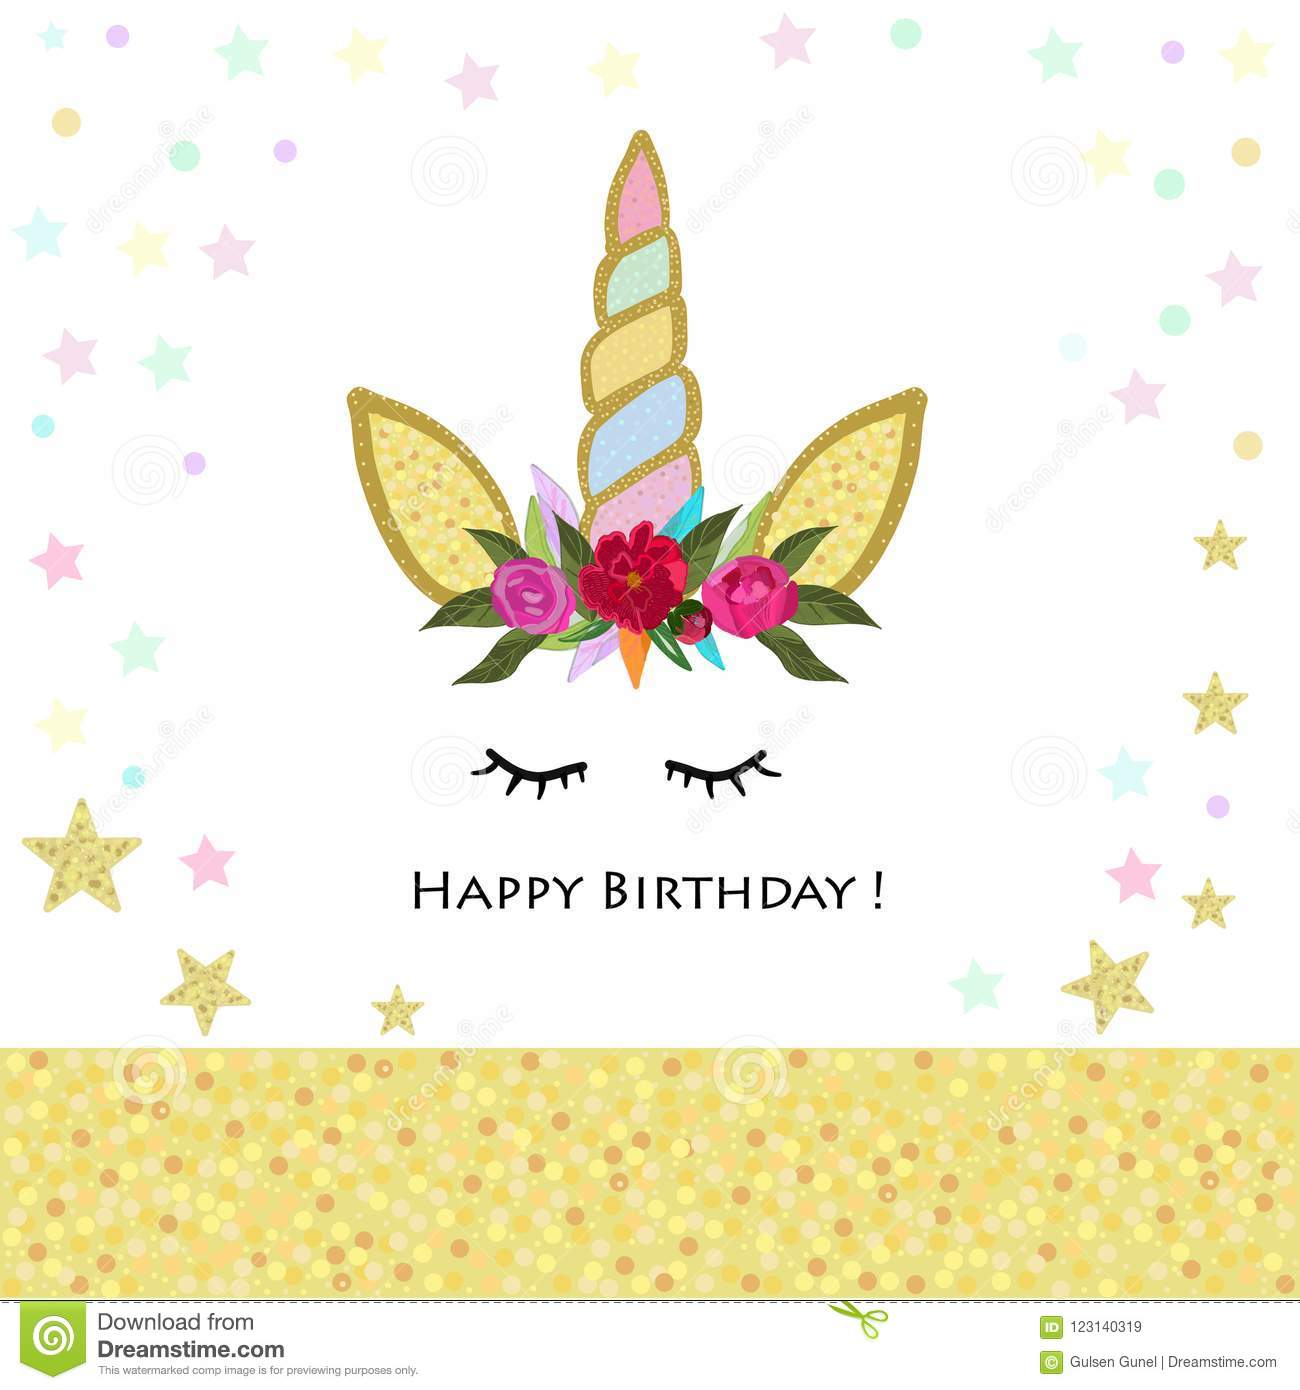 Unicorn Birthday Invitation Magical Unicorn Birthday